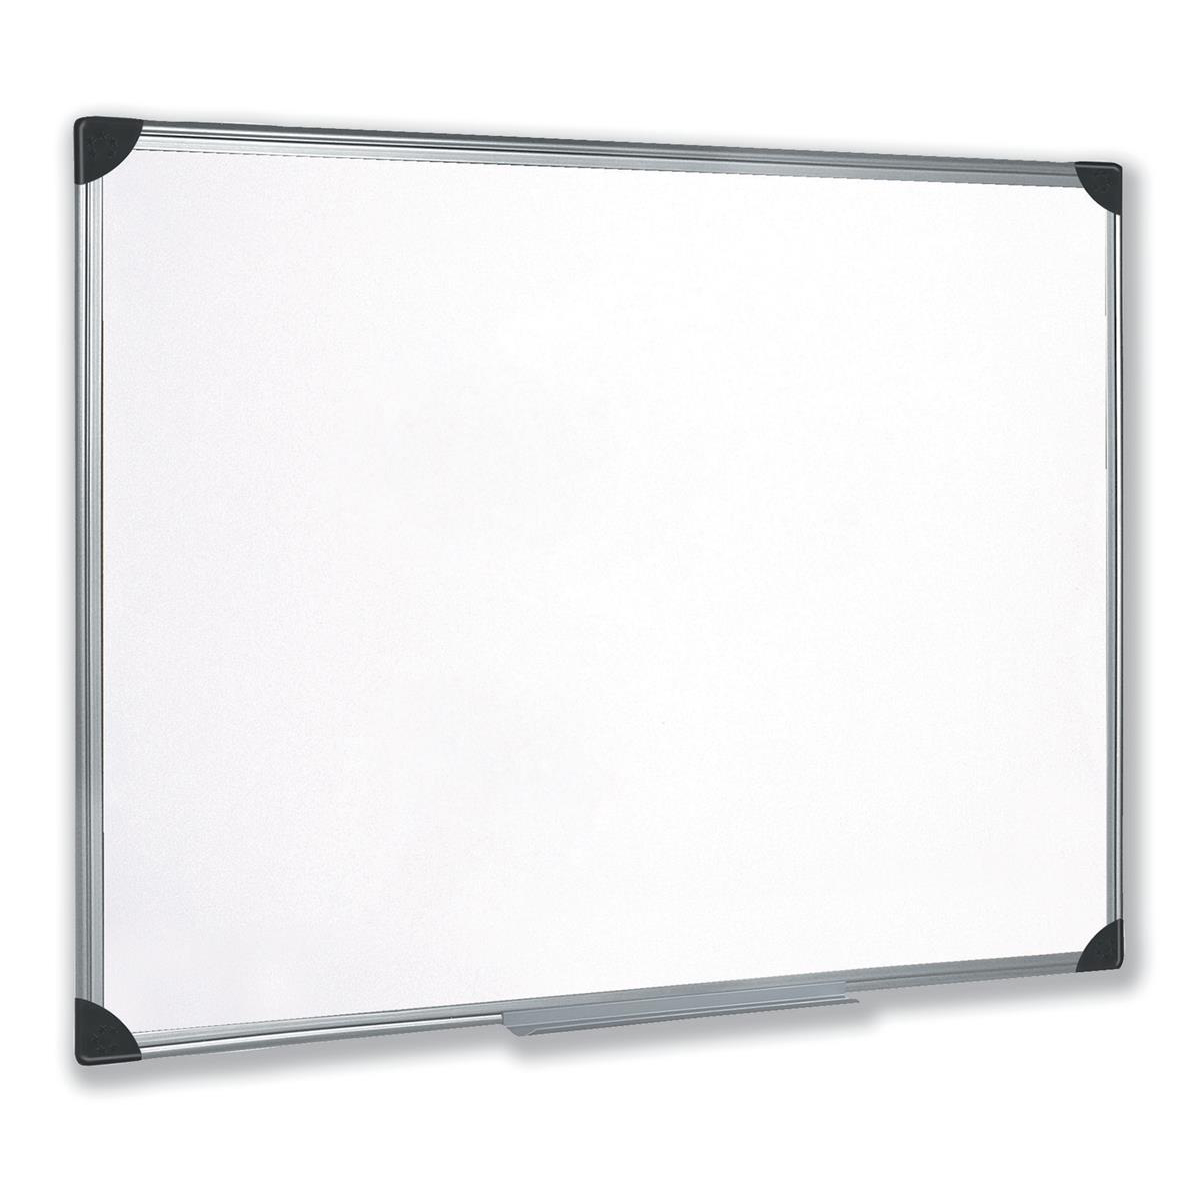 Magnetic 5 Star Office Whiteboard Drywipe Magnetic with Pen Tray and Aluminium Trim W900xH600mm